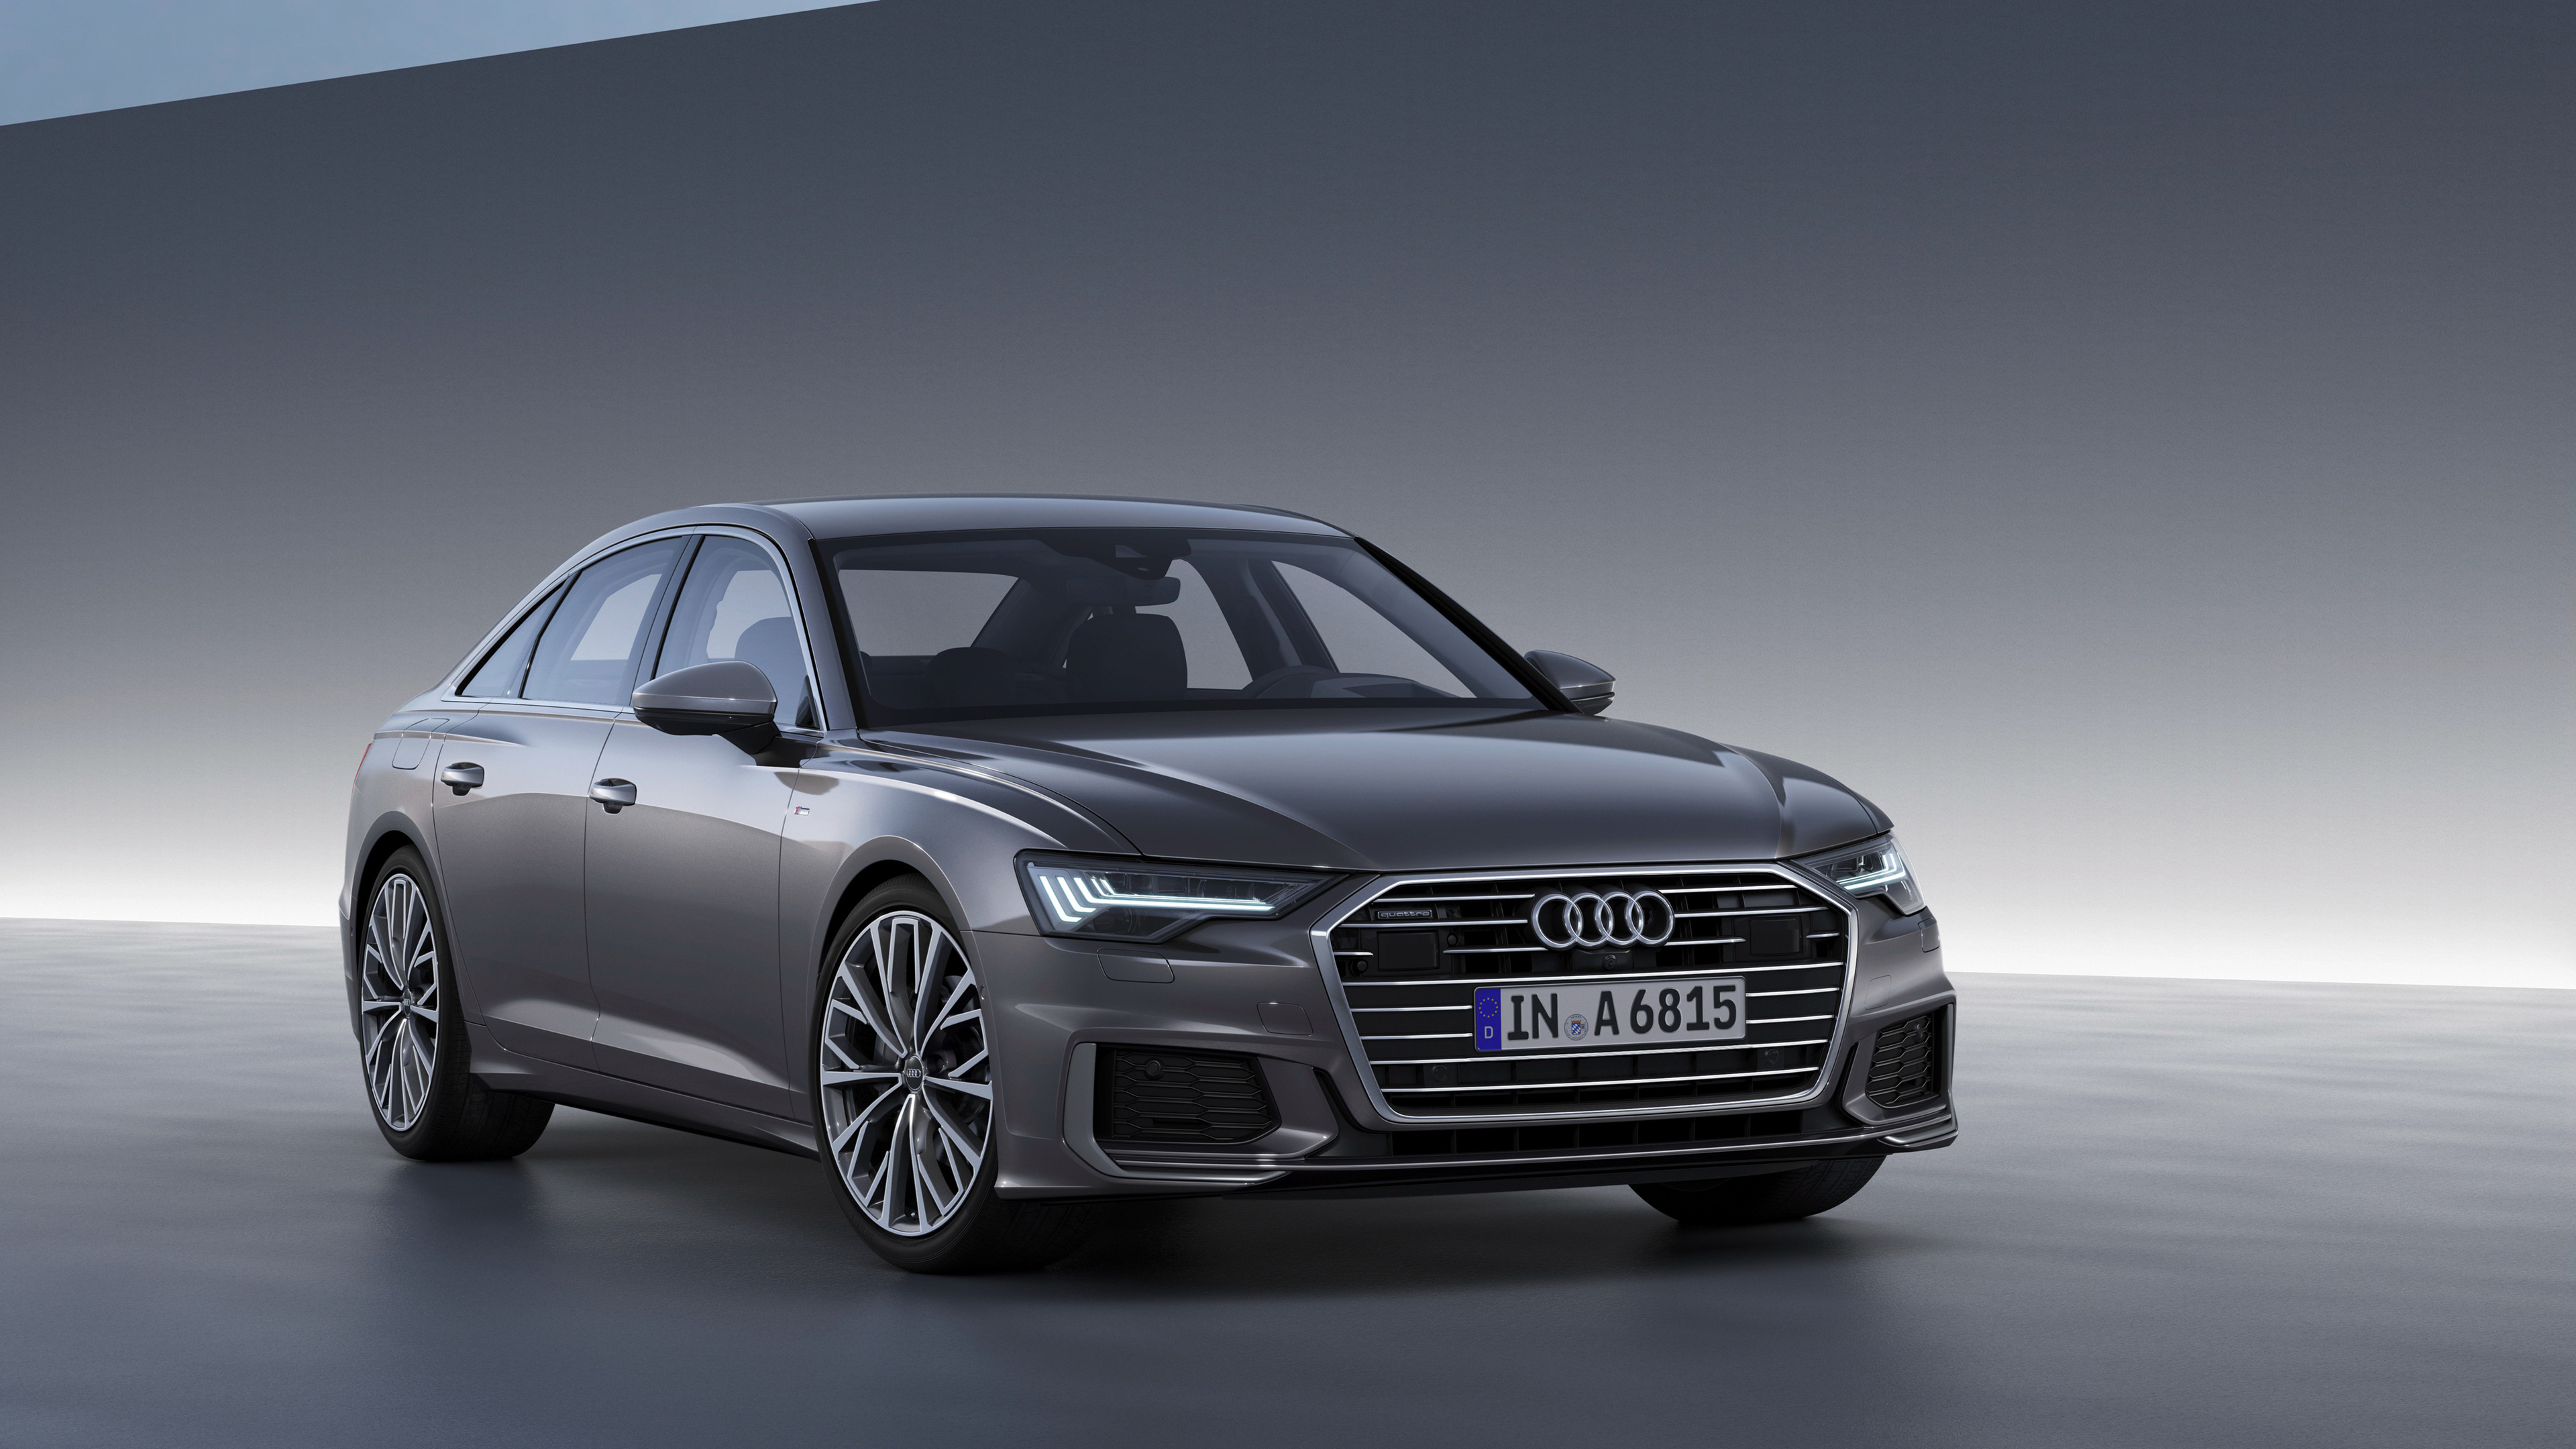 audi a6 50 tdi quattro s 1539109952 - Audi A6 50 TDI Quattro S - hd-wallpapers, audi wallpapers, audi a6 wallpapers, 4k-wallpapers, 2018 cars wallpapers